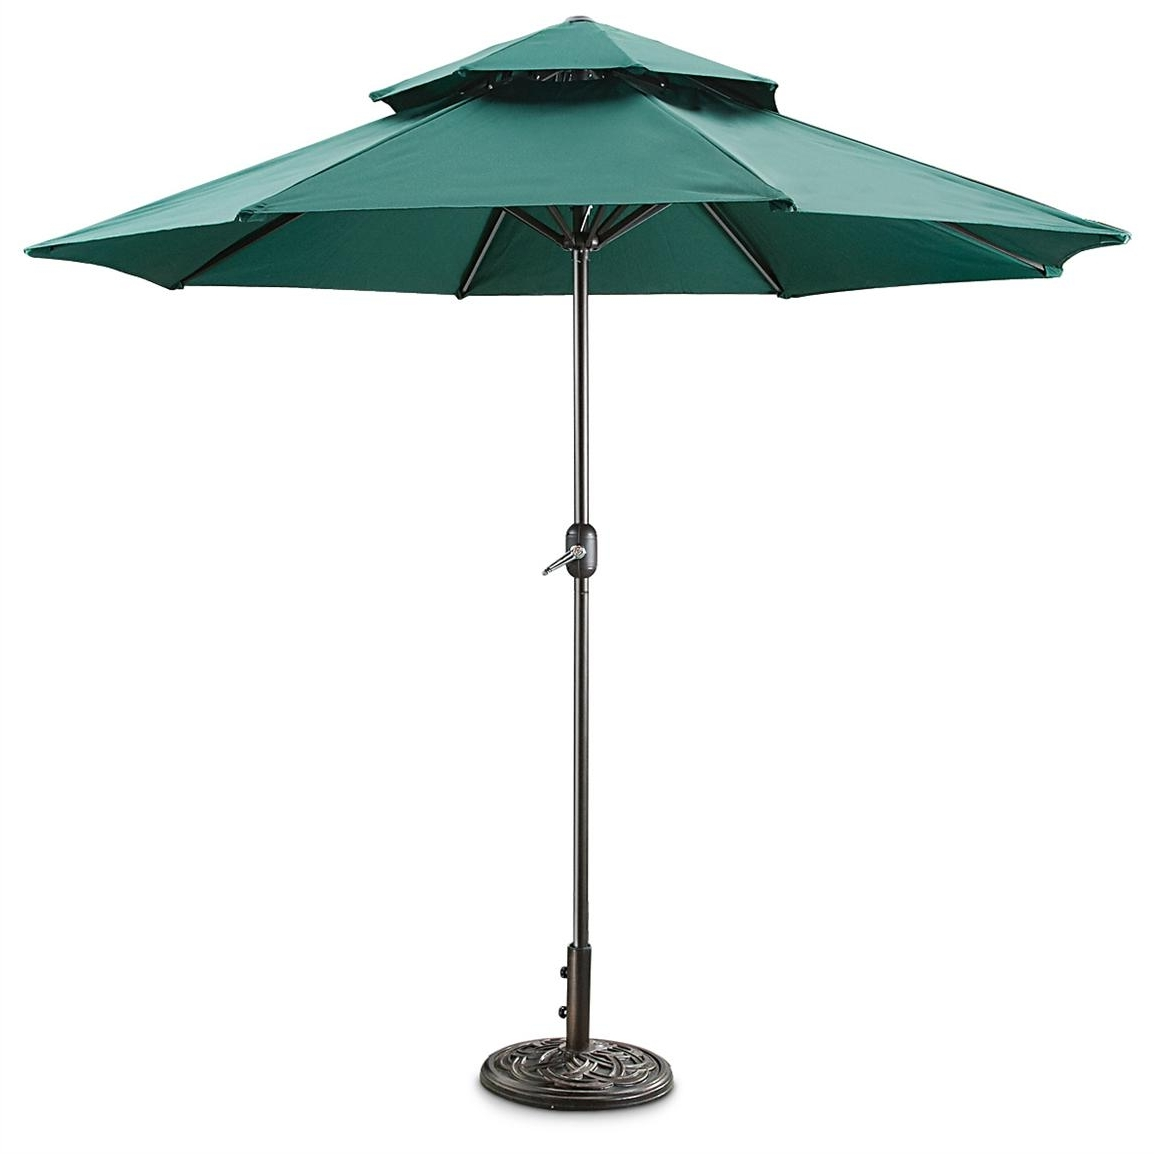 Most Current Vented Patio Umbrellas Intended For Castlecreek 9' Two Tier Patio Umbrella With Crank – 581840, Patio (View 14 of 20)